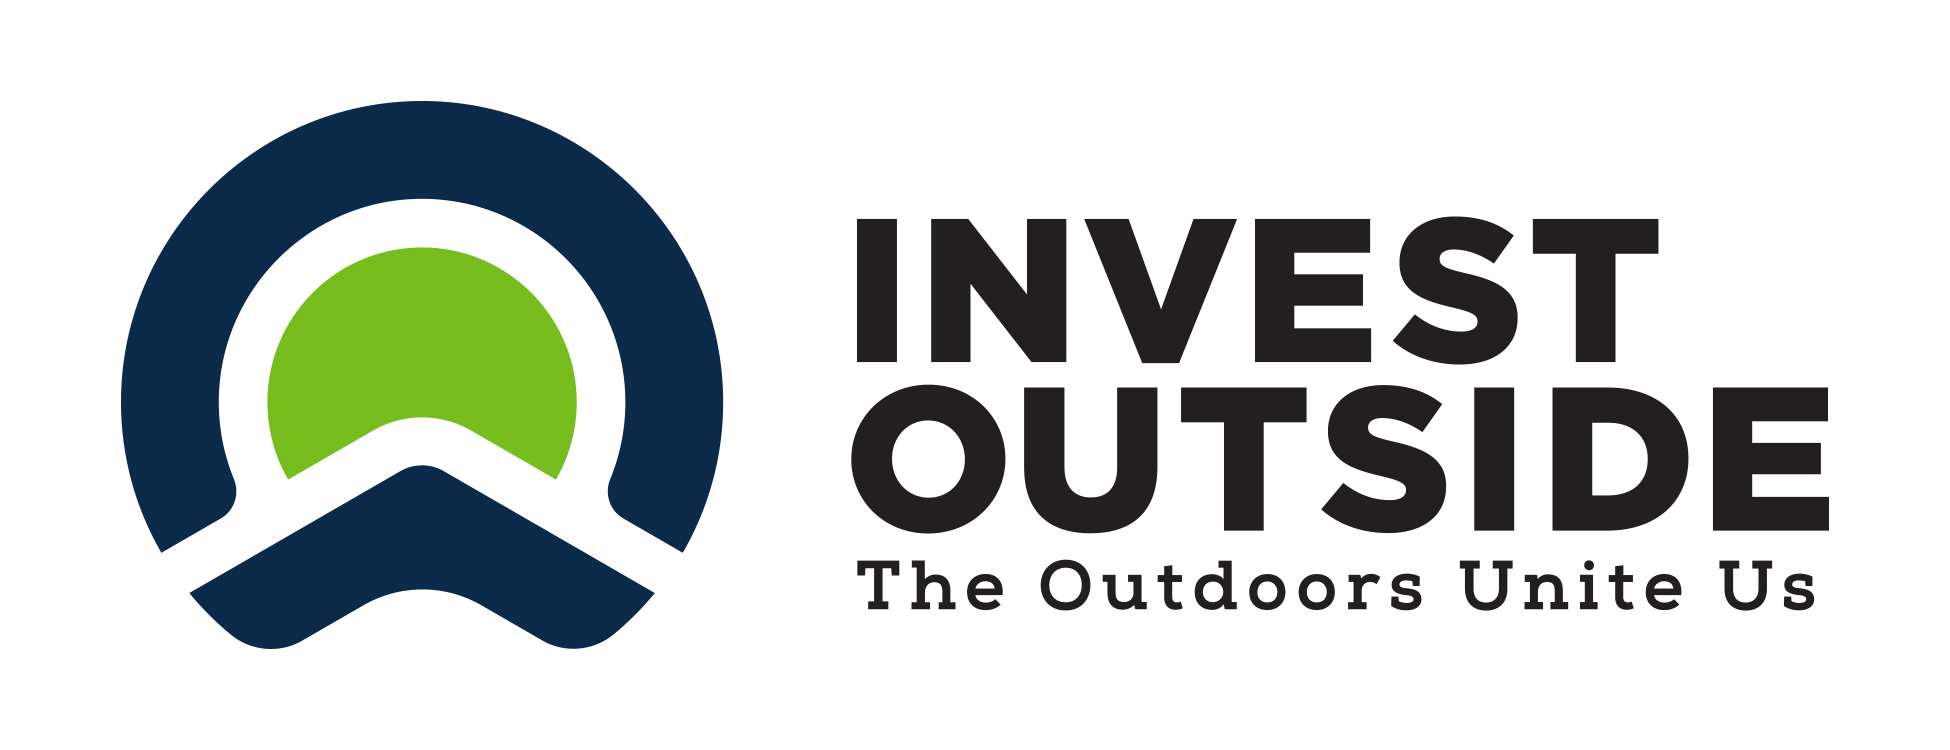 Invest_Outside_logo-1_w-tag.jpg